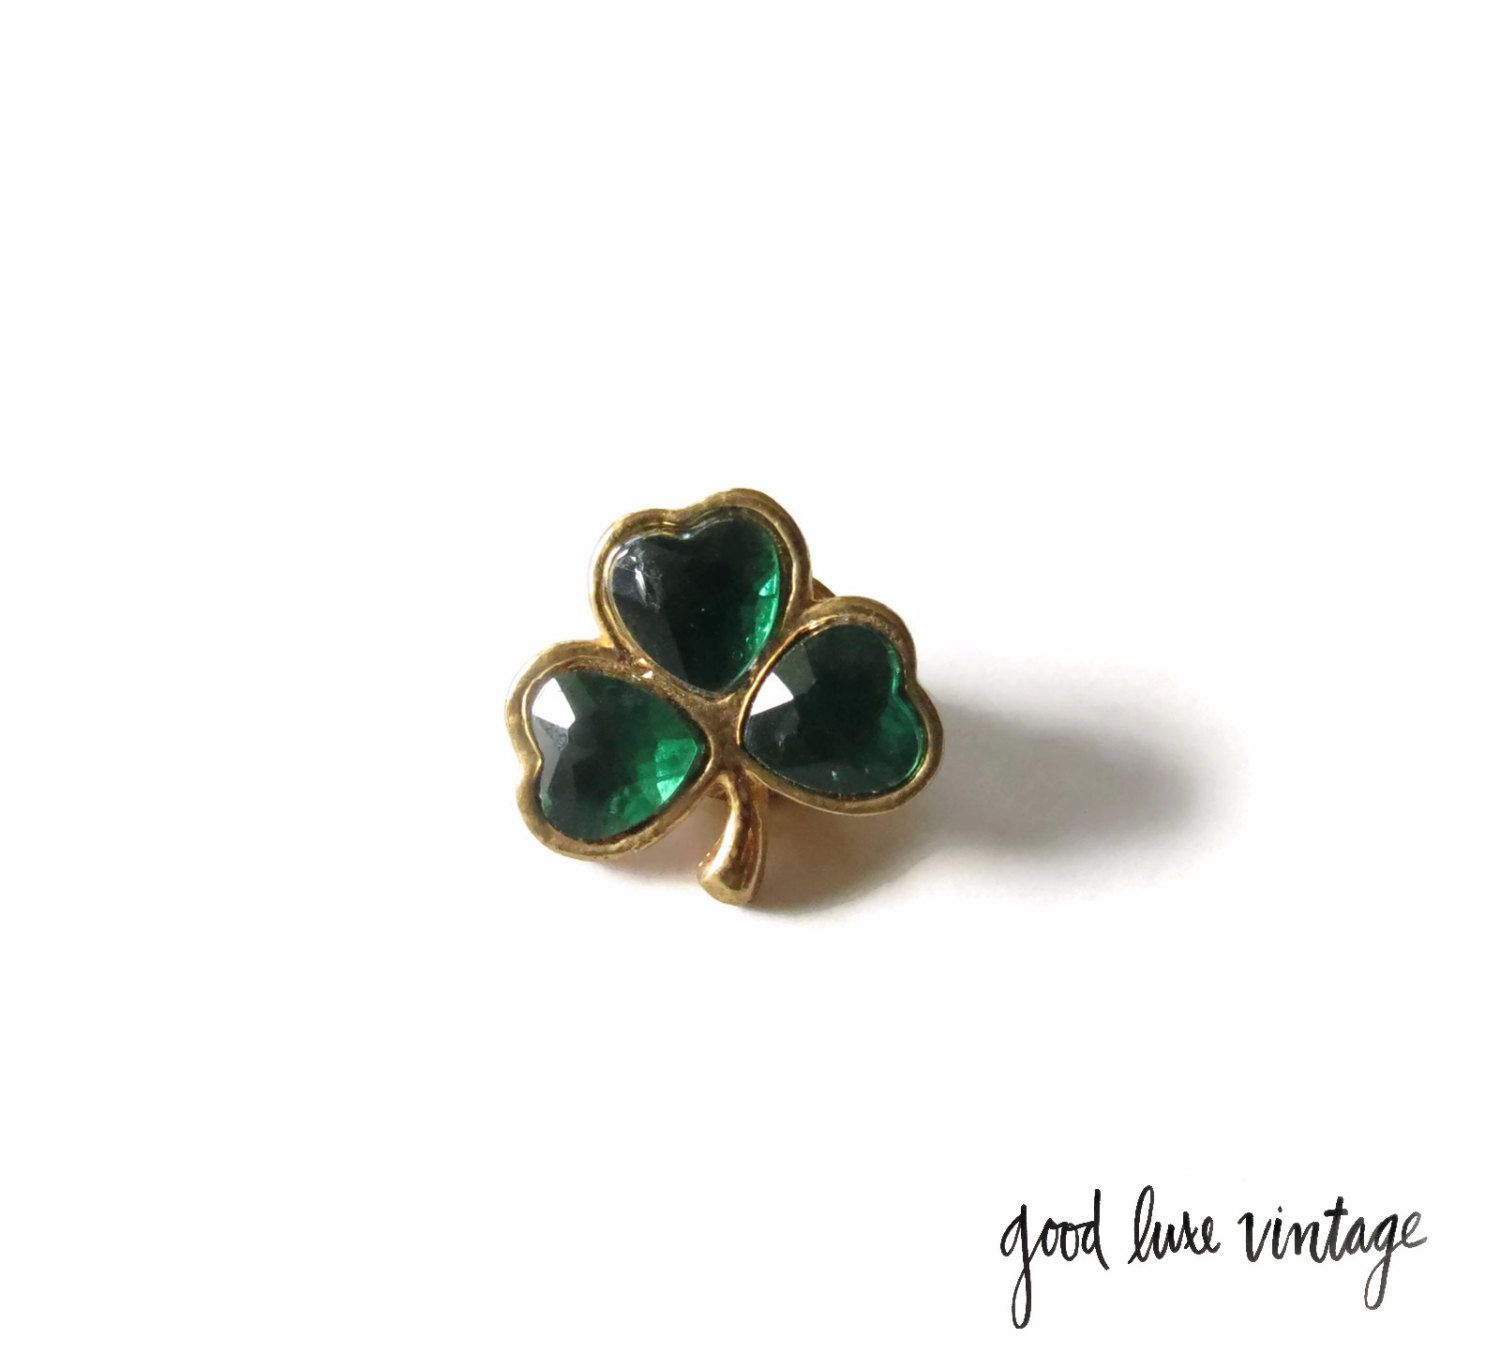 Shamrock Brooch Pin Emerald Green Rhinestones Irish St_ Patrick's Day Lucky Clover Costume Jewelry Accessory Tack Pin Tie Gold Tone by GoodLuxeVintage on Etsy